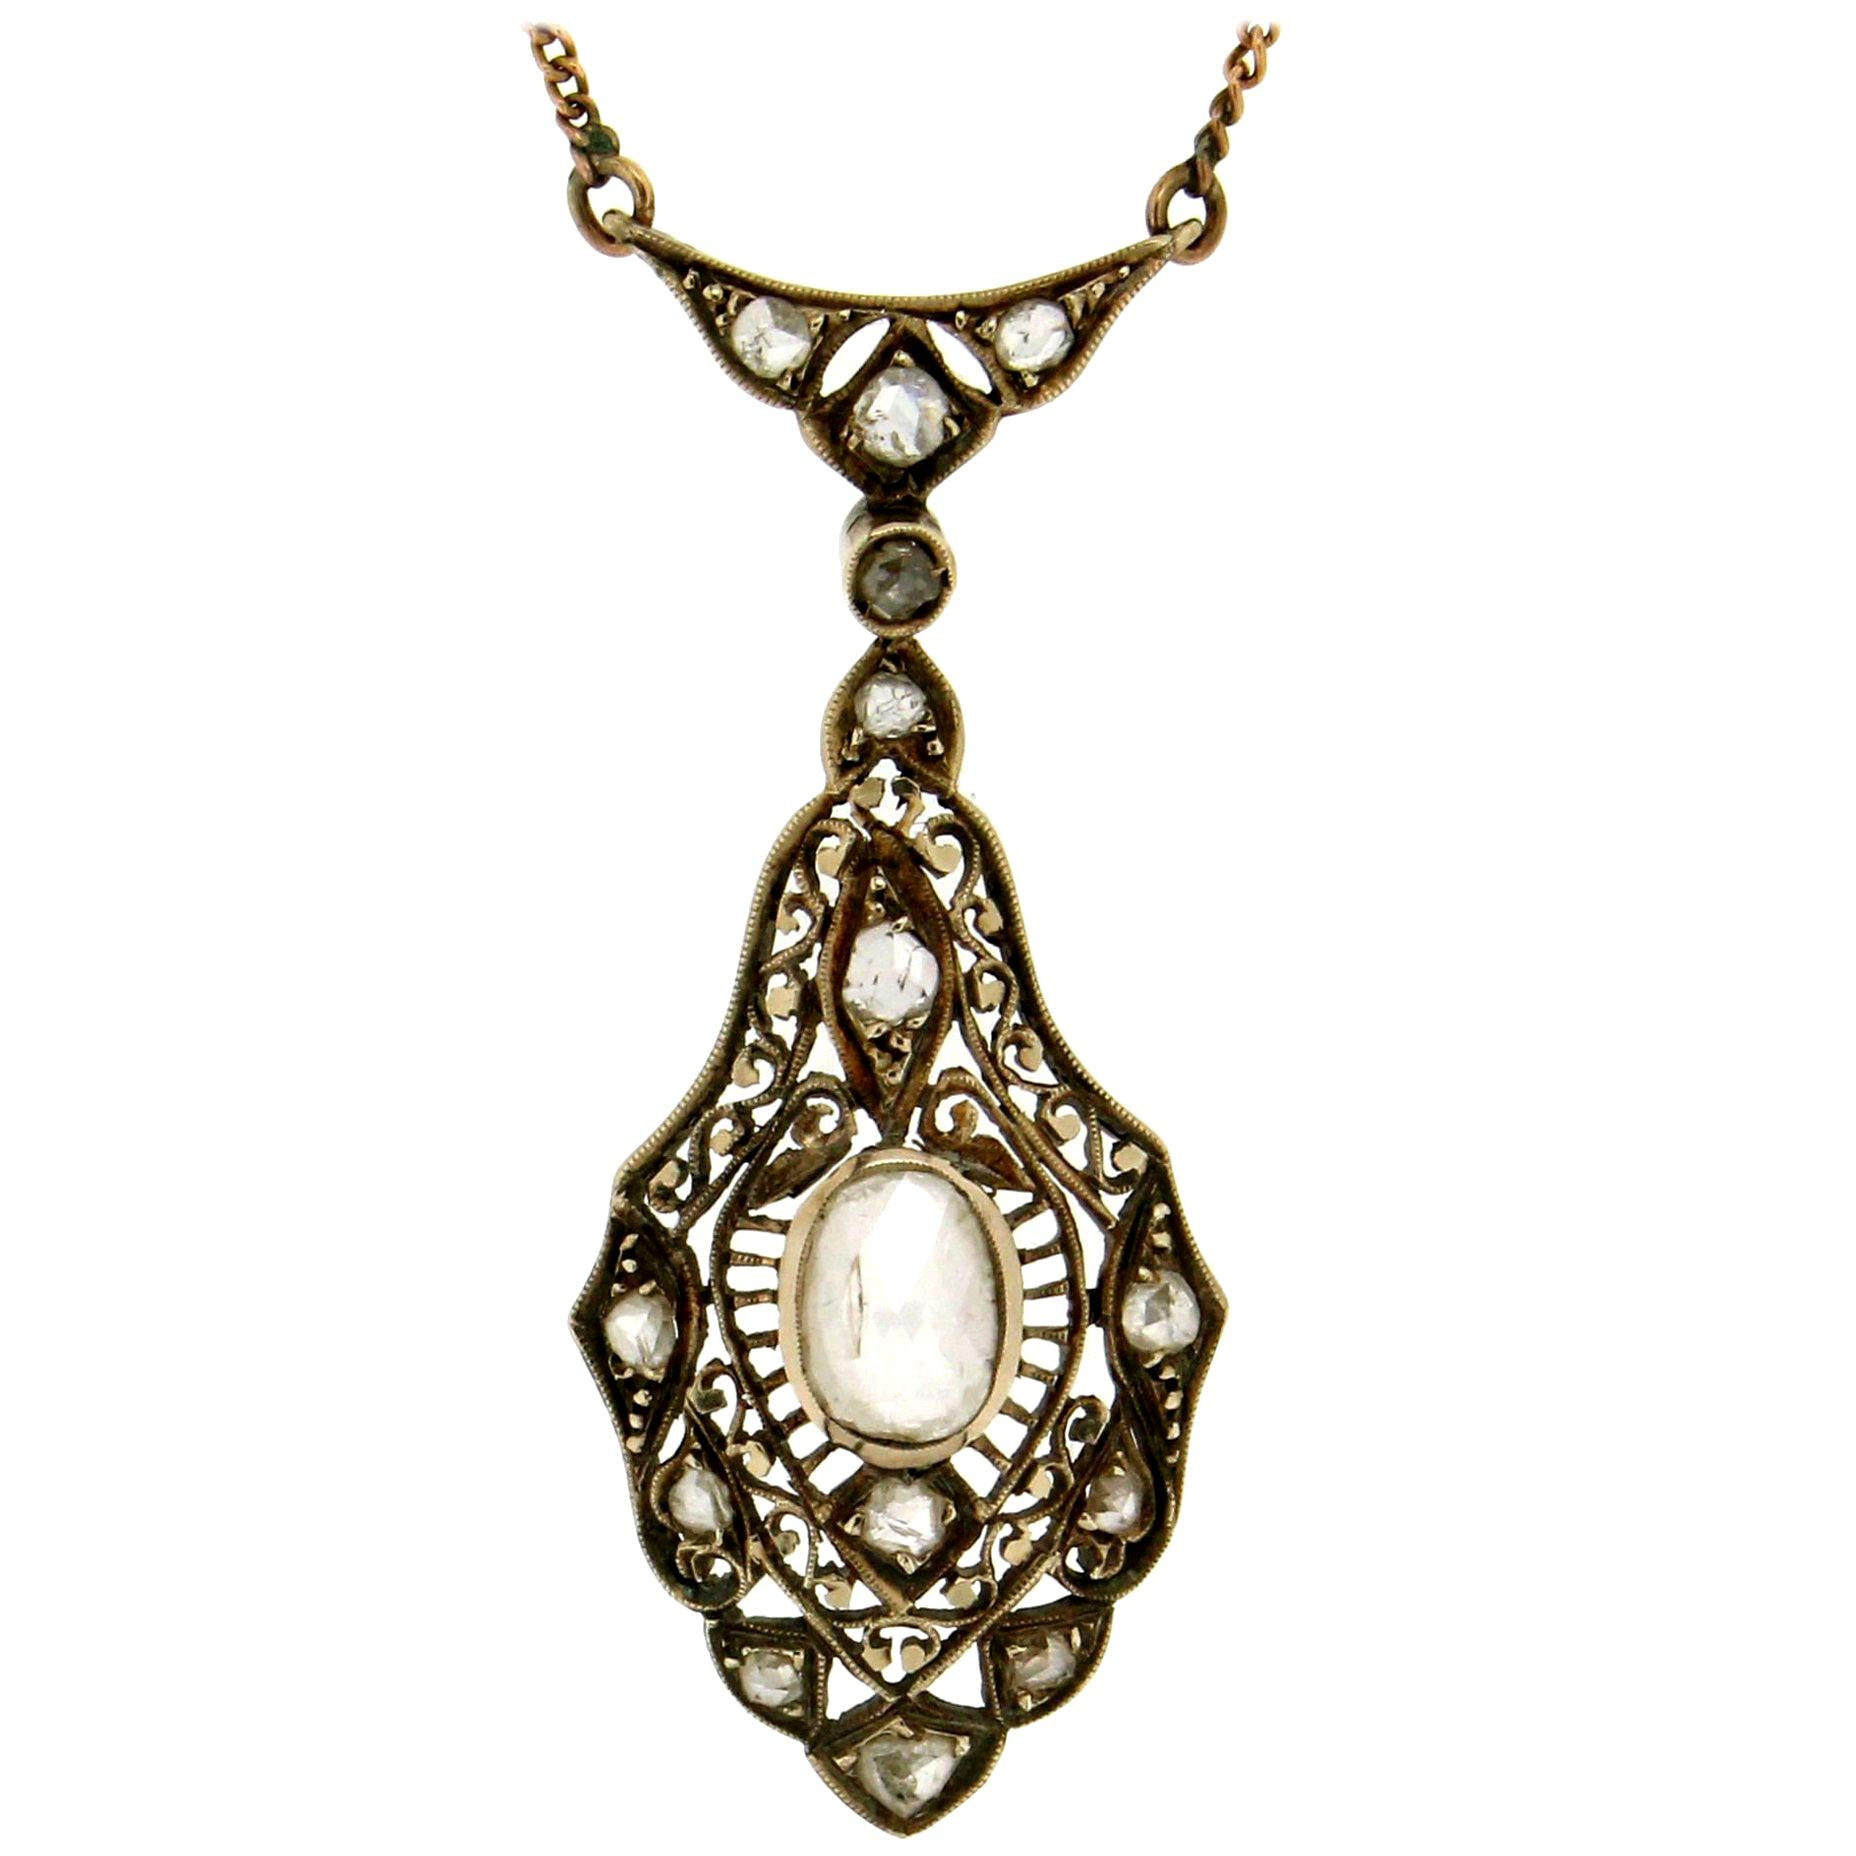 Handcraft 14 Karat Yellow Gold Diamonds Pendant Necklace